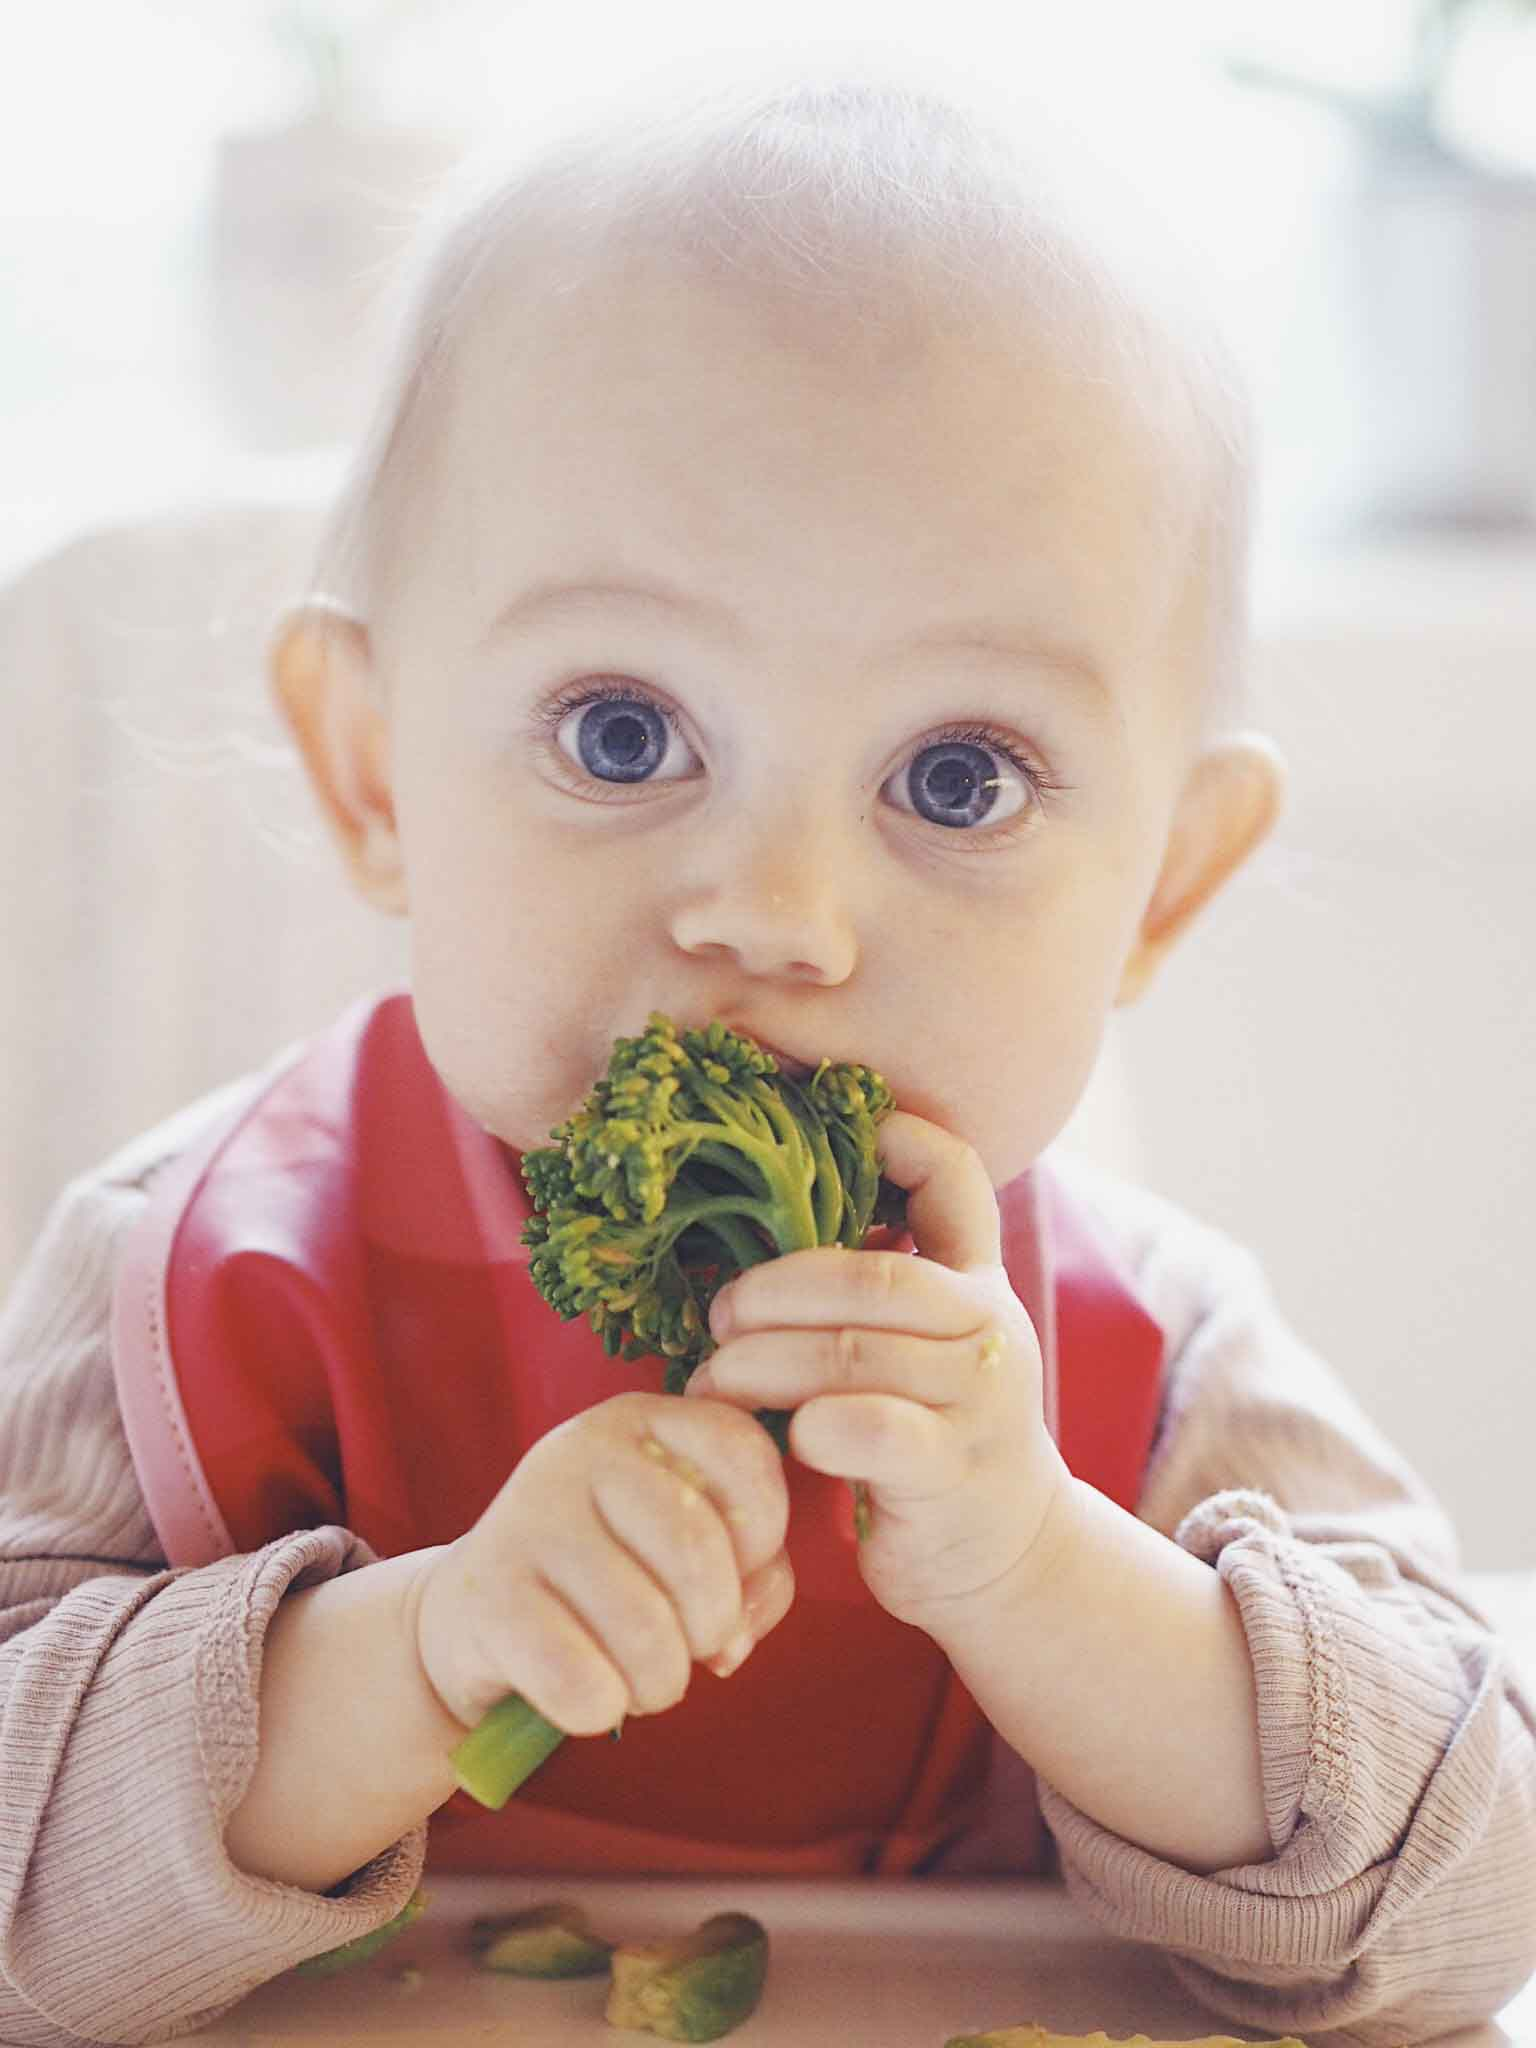 Baby-let weaning